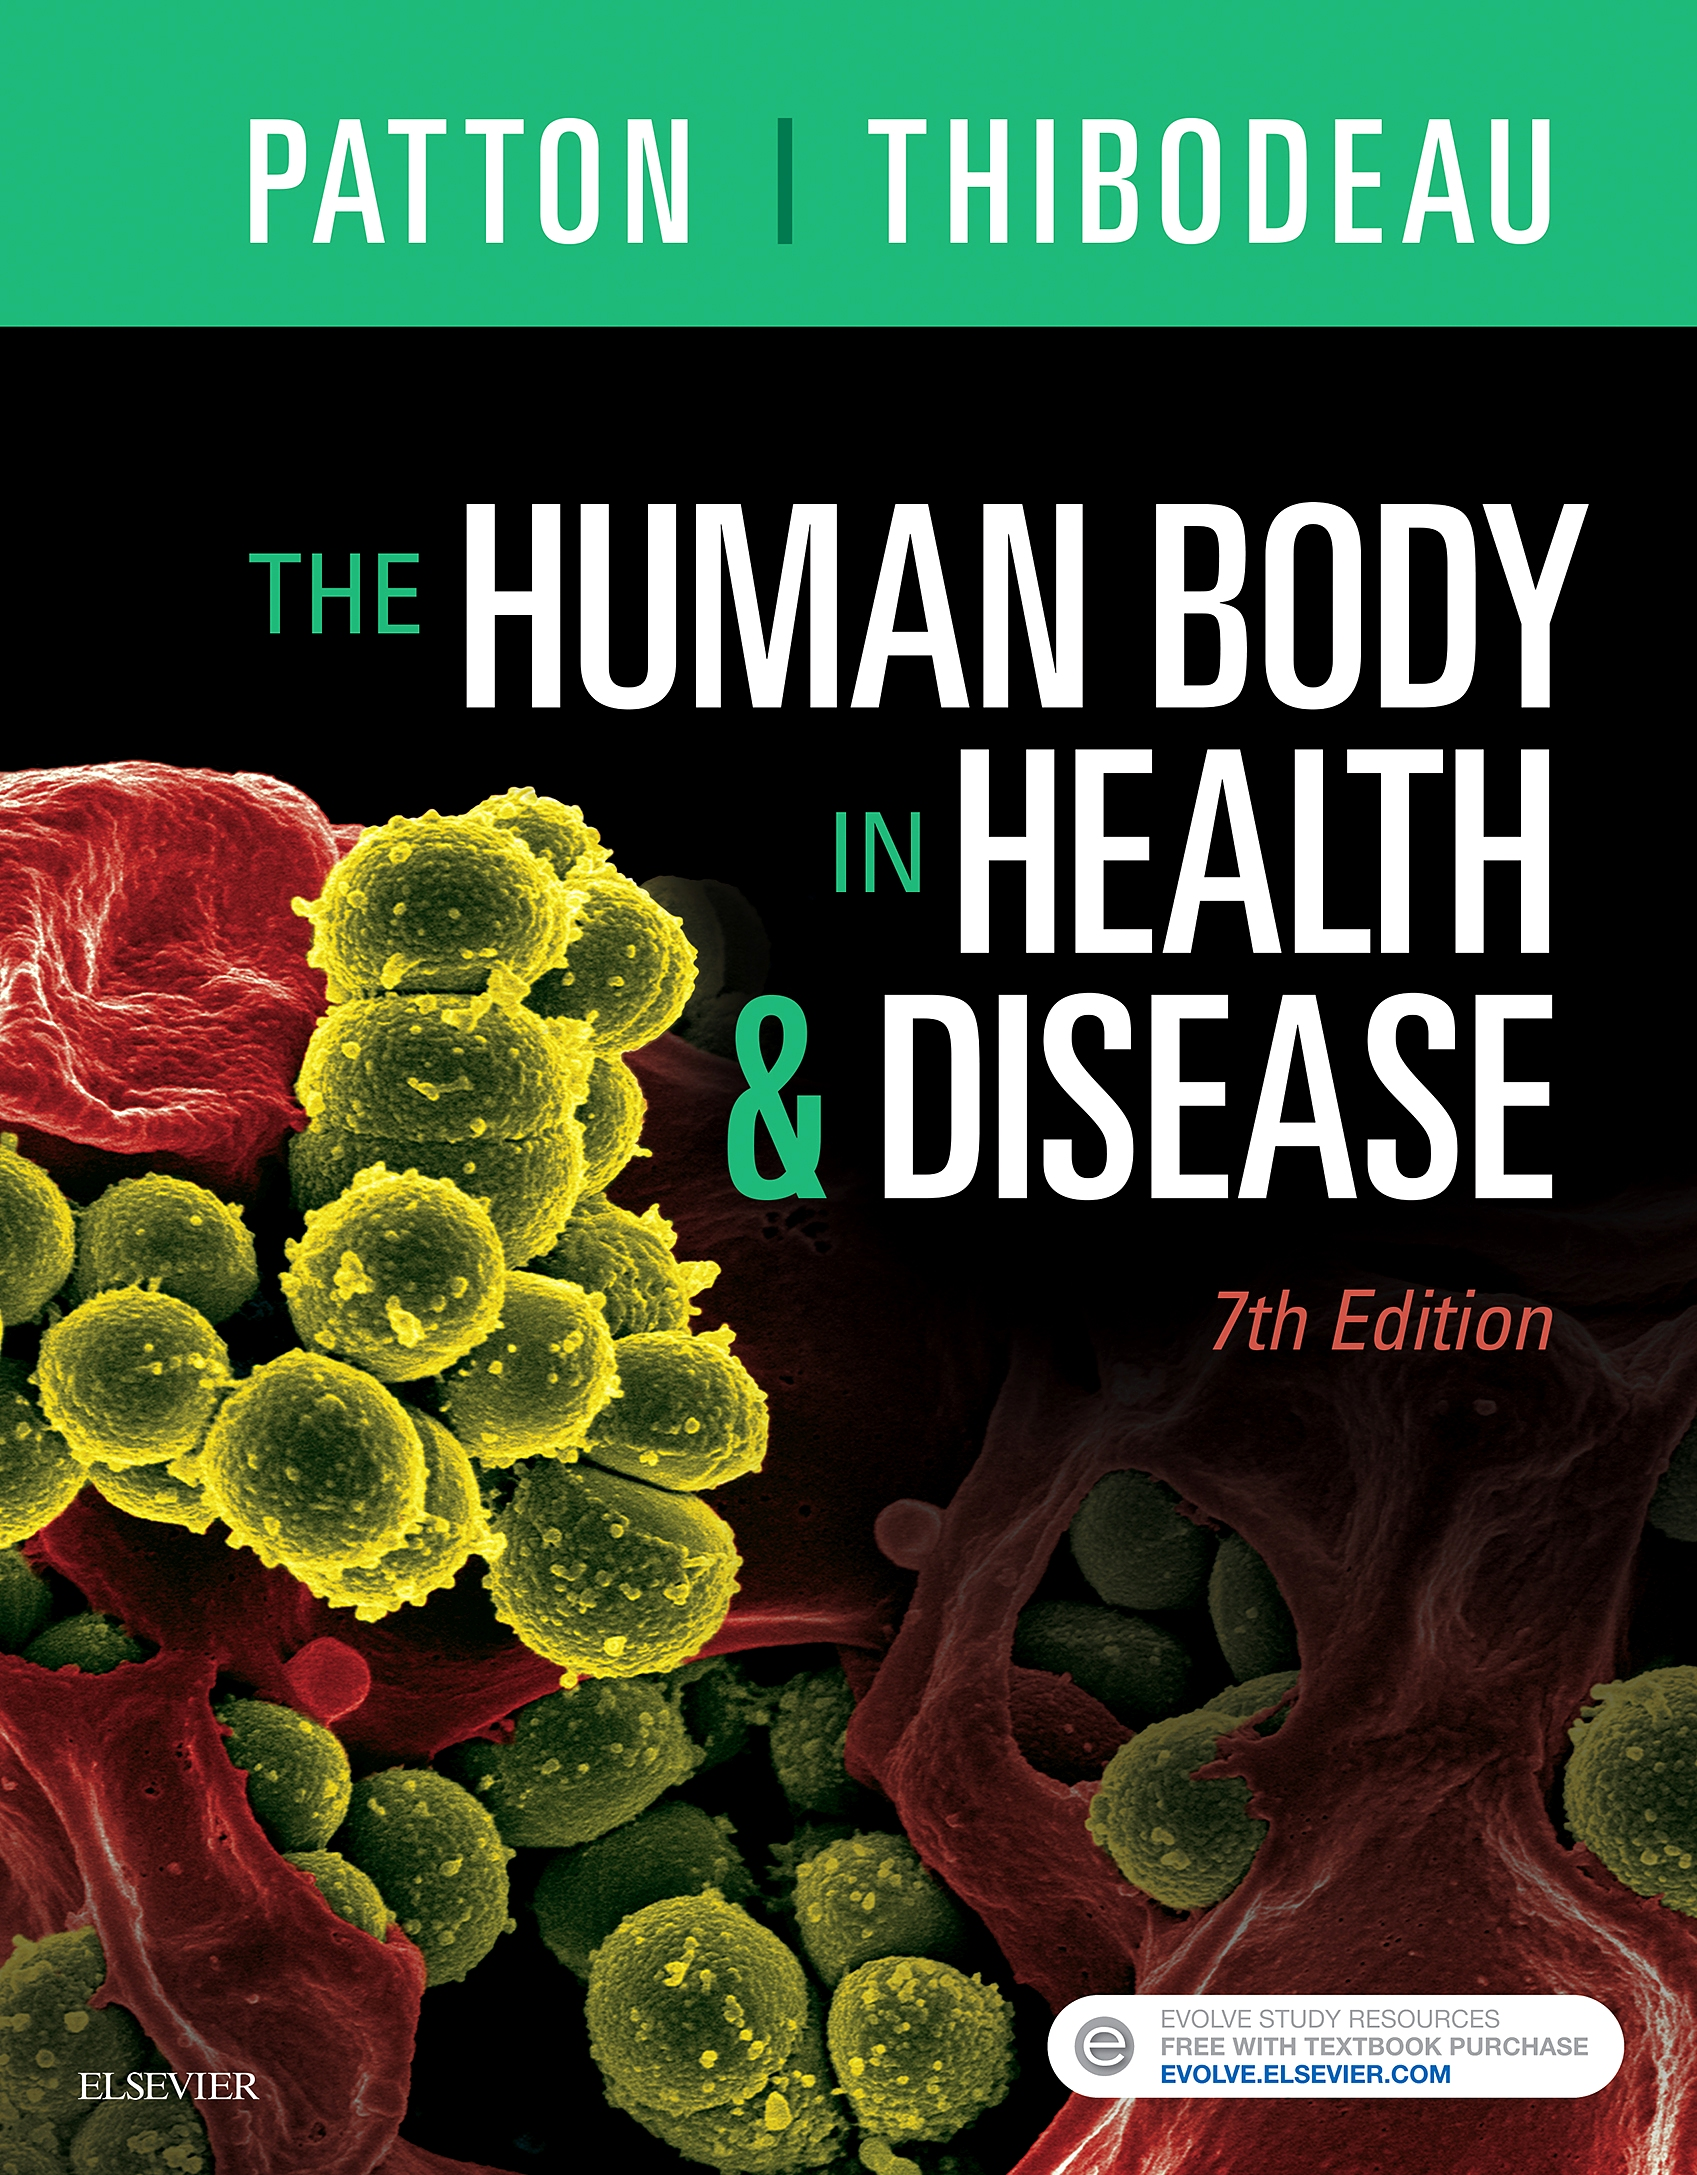 Evolve Resources for The Human Body in Health & Disease, 7th Edition